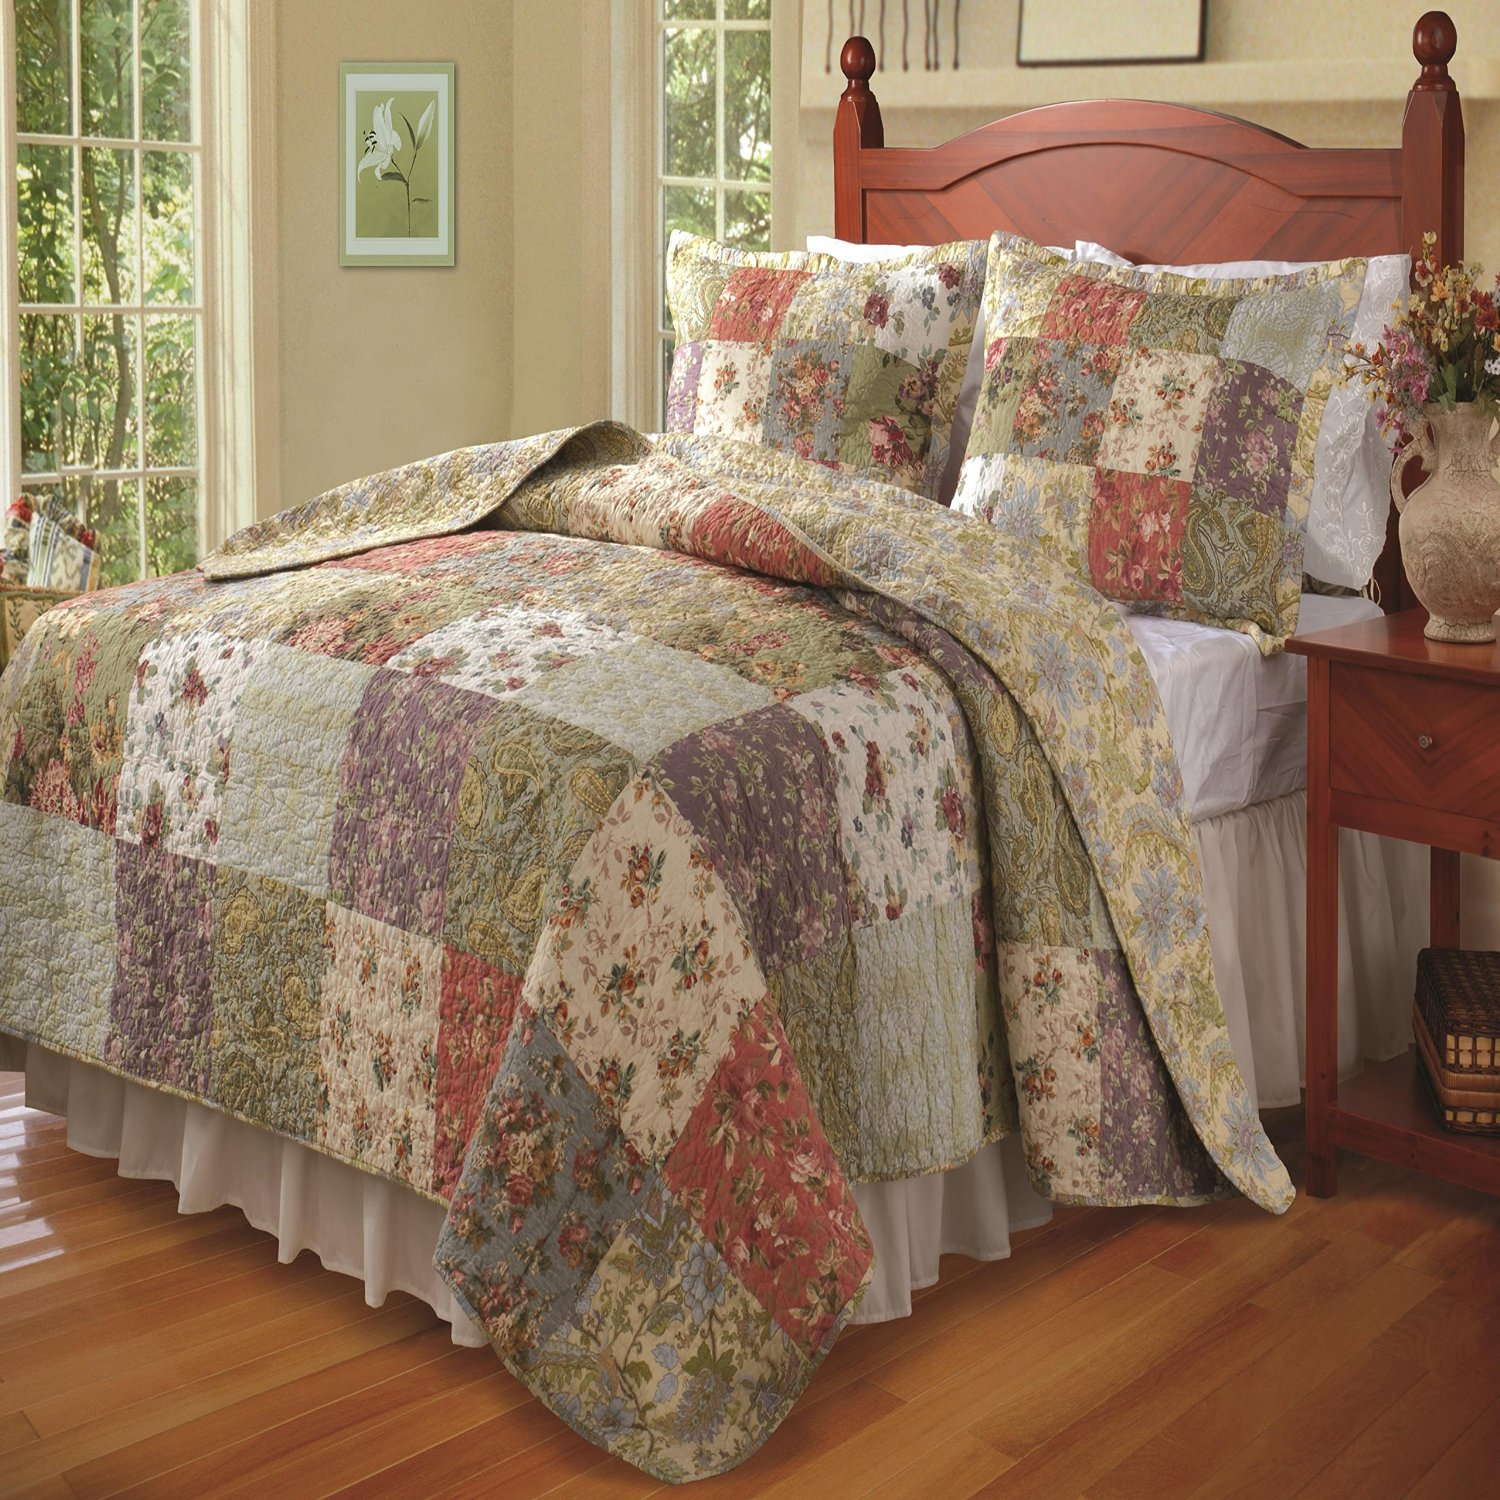 set comforter morning bedding grey home walmartcom plaid bedinabag gray mini comforters rustic mainstays kirkland